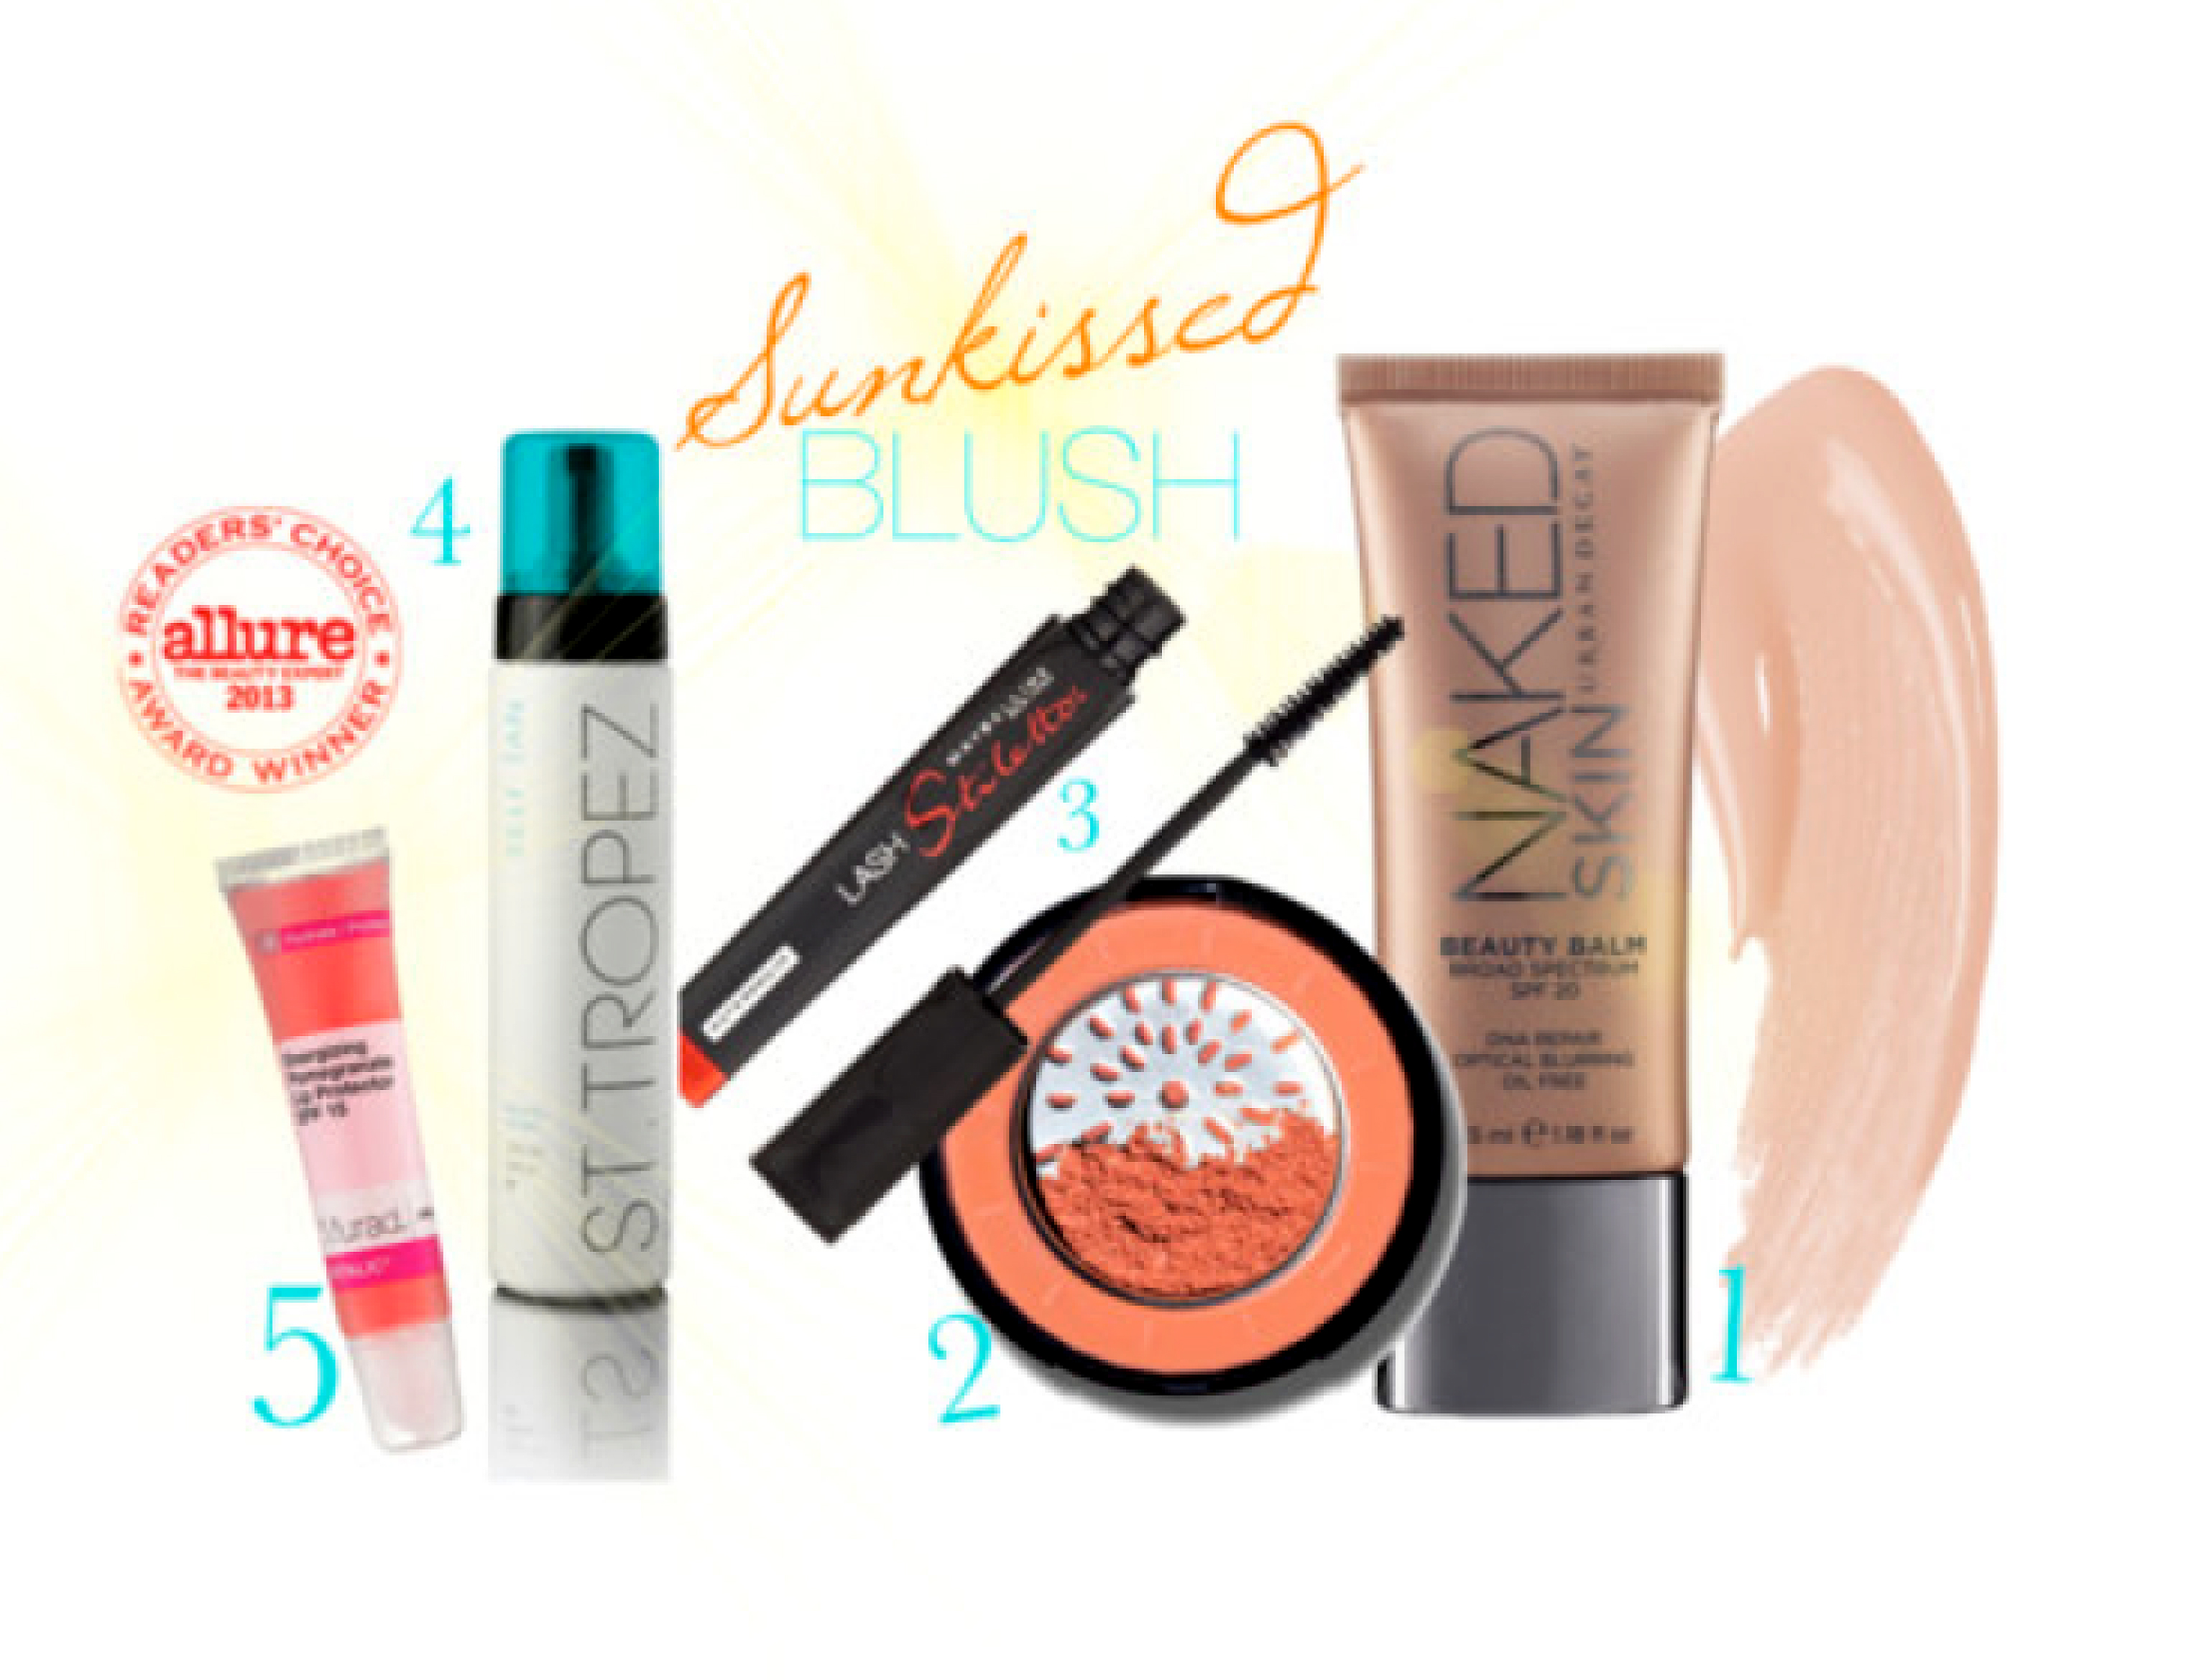 Our Summer Beauty Picks for 2013!